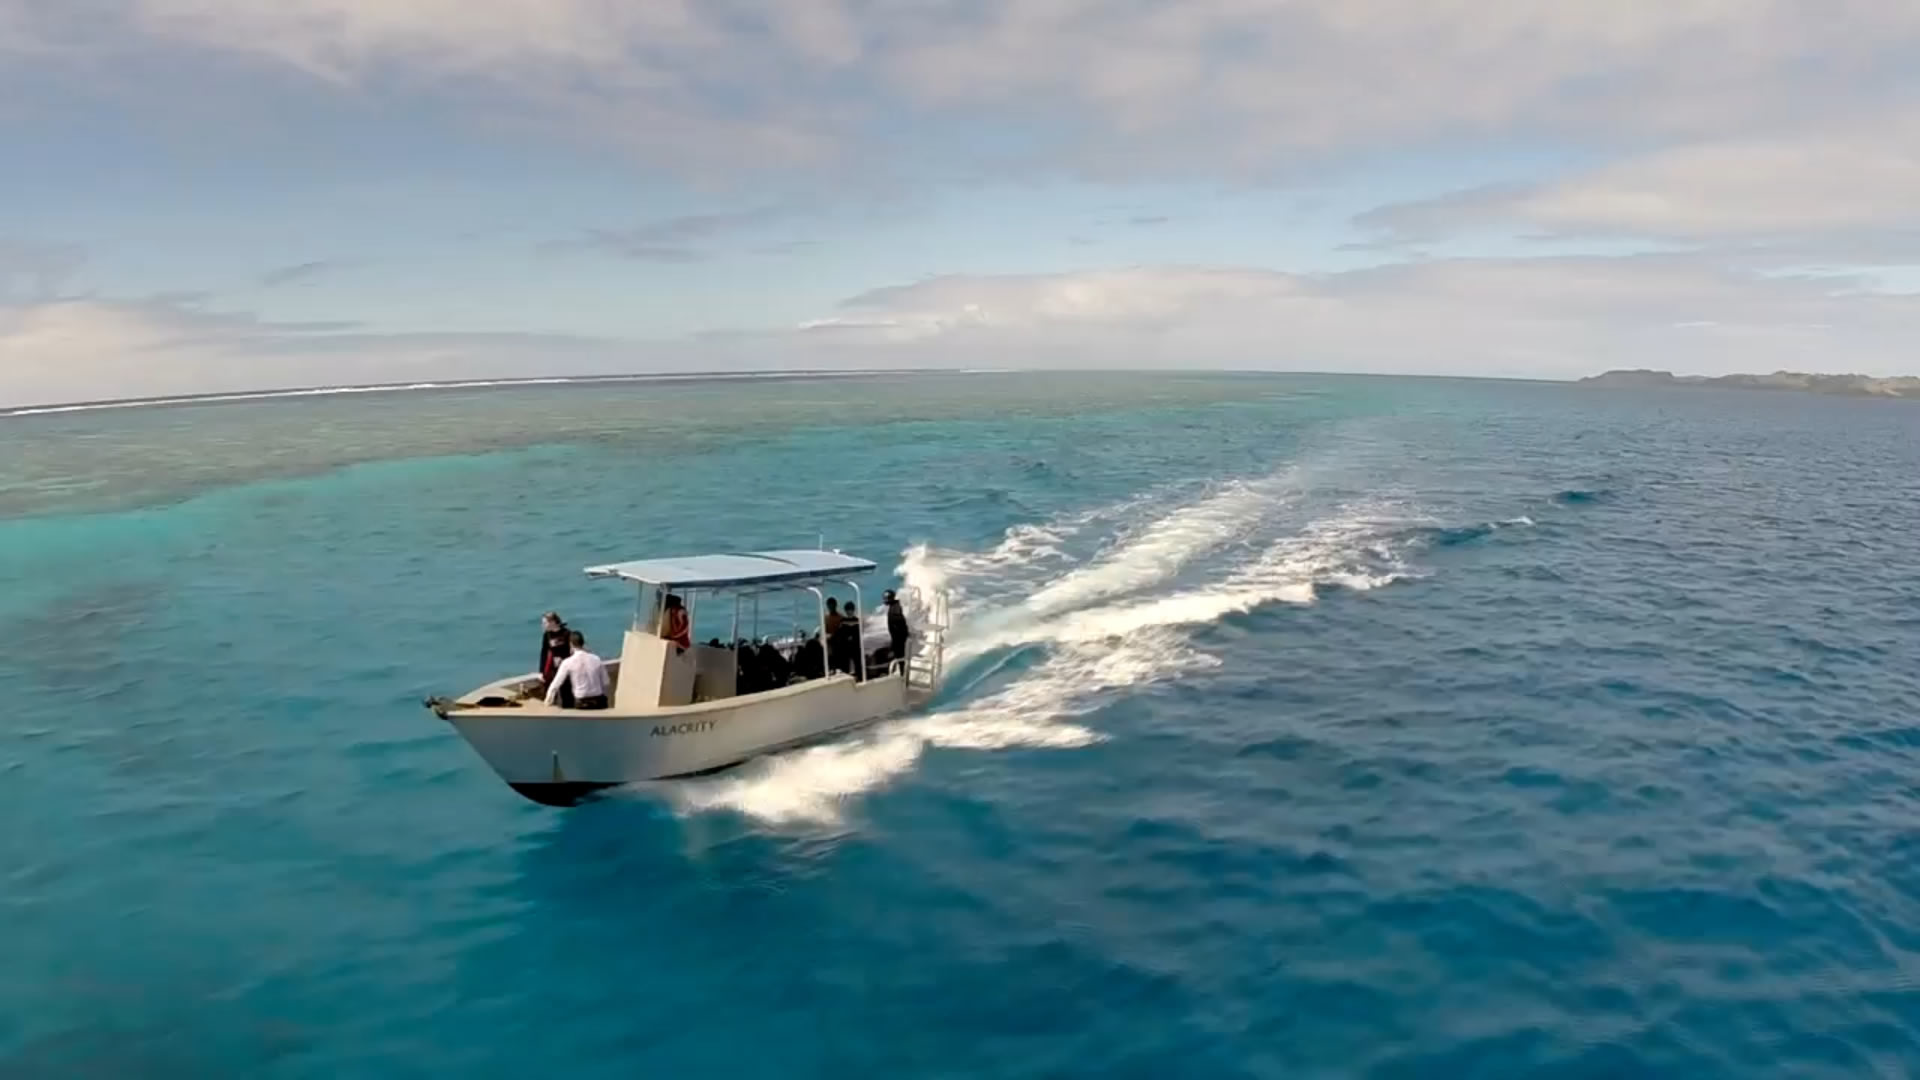 Scuba boat in the ocean of Fiji